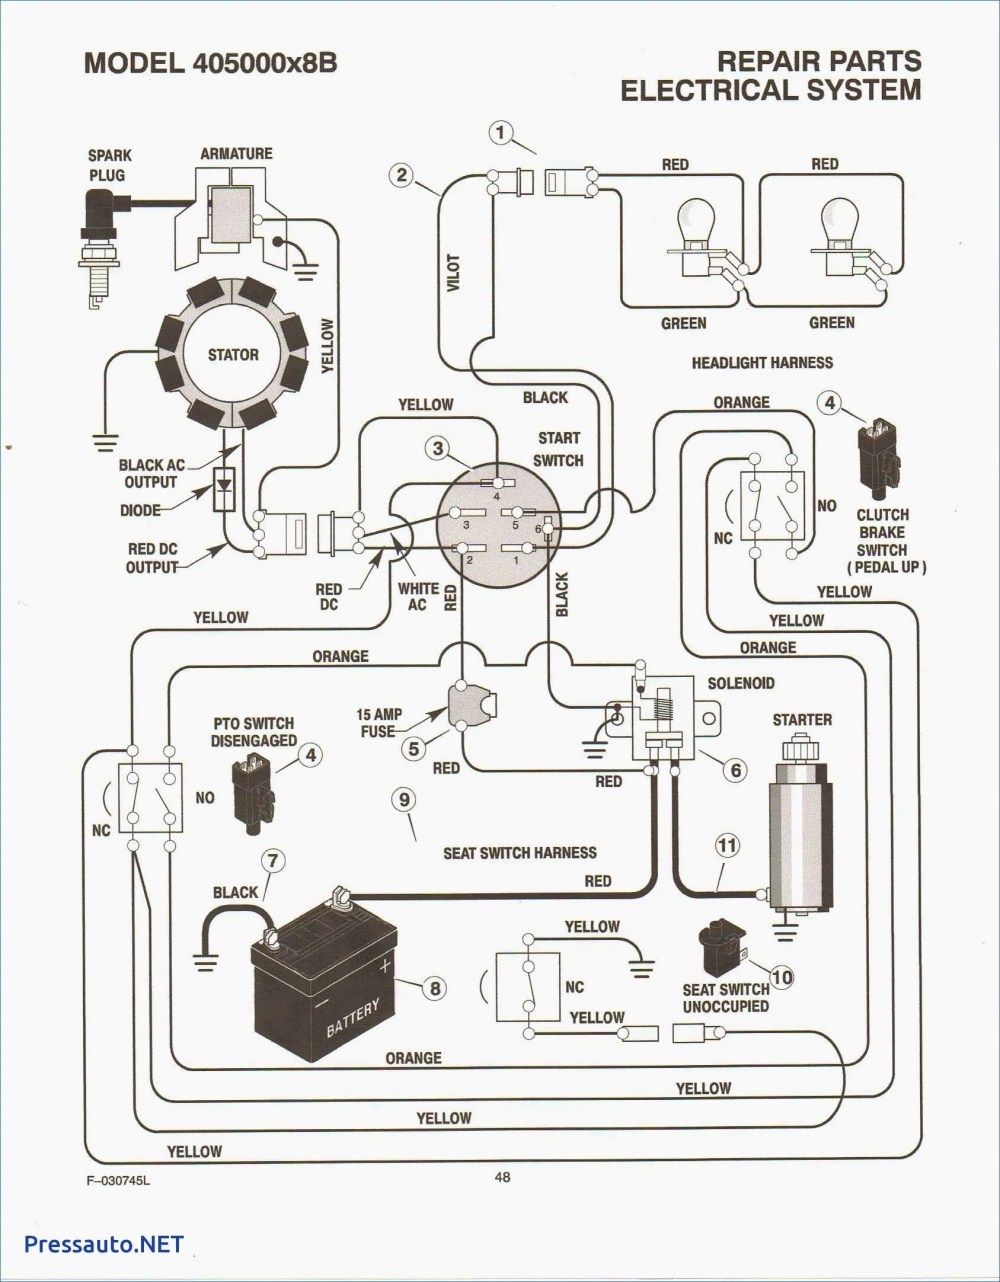 medium resolution of briggs and stratton 11 hp wiring diagram residential electrical briggs and stratton 18 5 engine diagram briggs